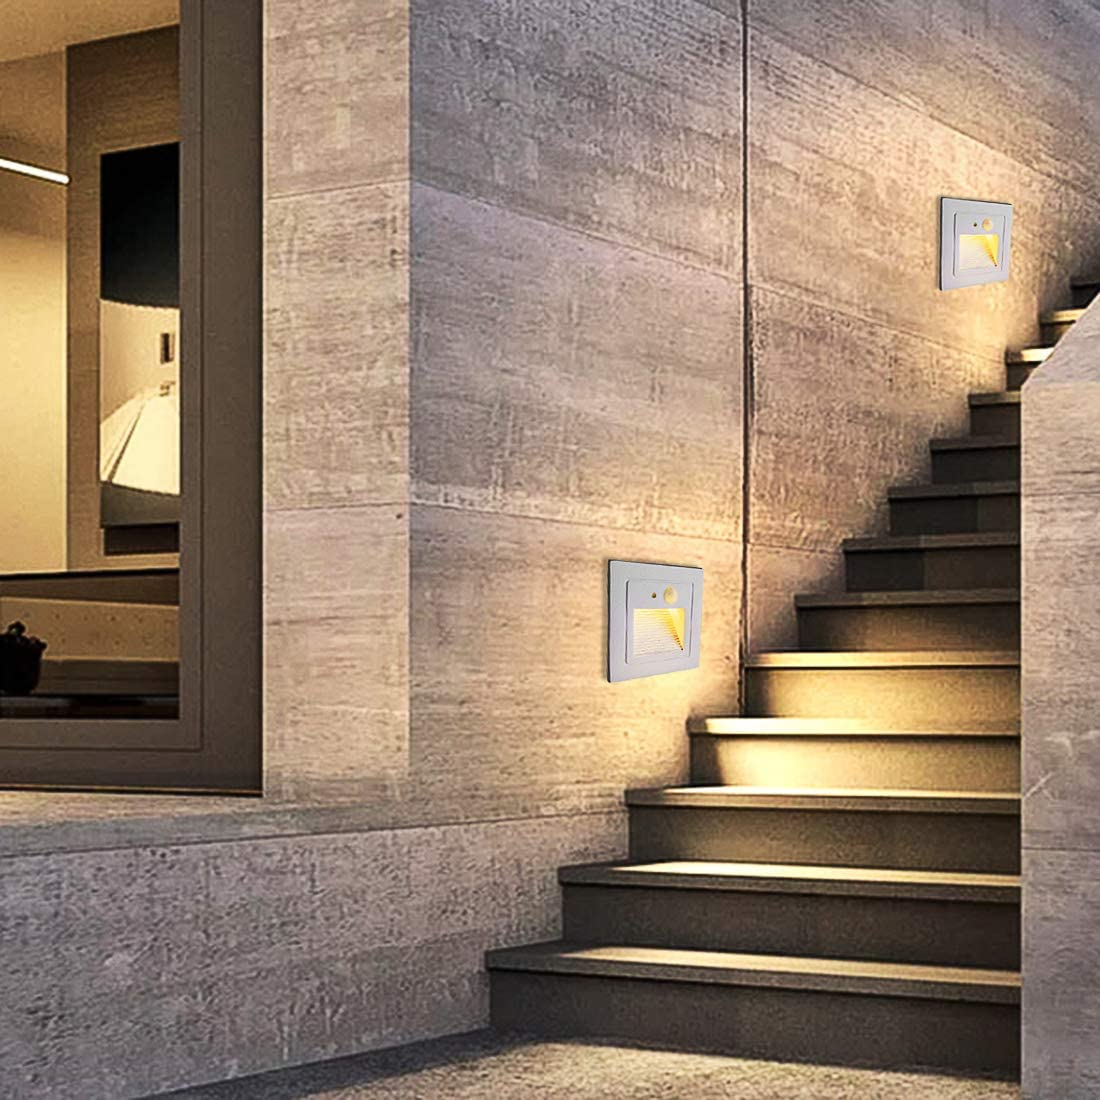 2 Pack Warm Withe 3W Wall Recessed Stair Lights Elitlife Motion Sensor LED Stairs Step Night Light Indoor//Outdoor Wall Recessed Garden Kitchen Plinth Patio Stairway Lighting Guide Lamp